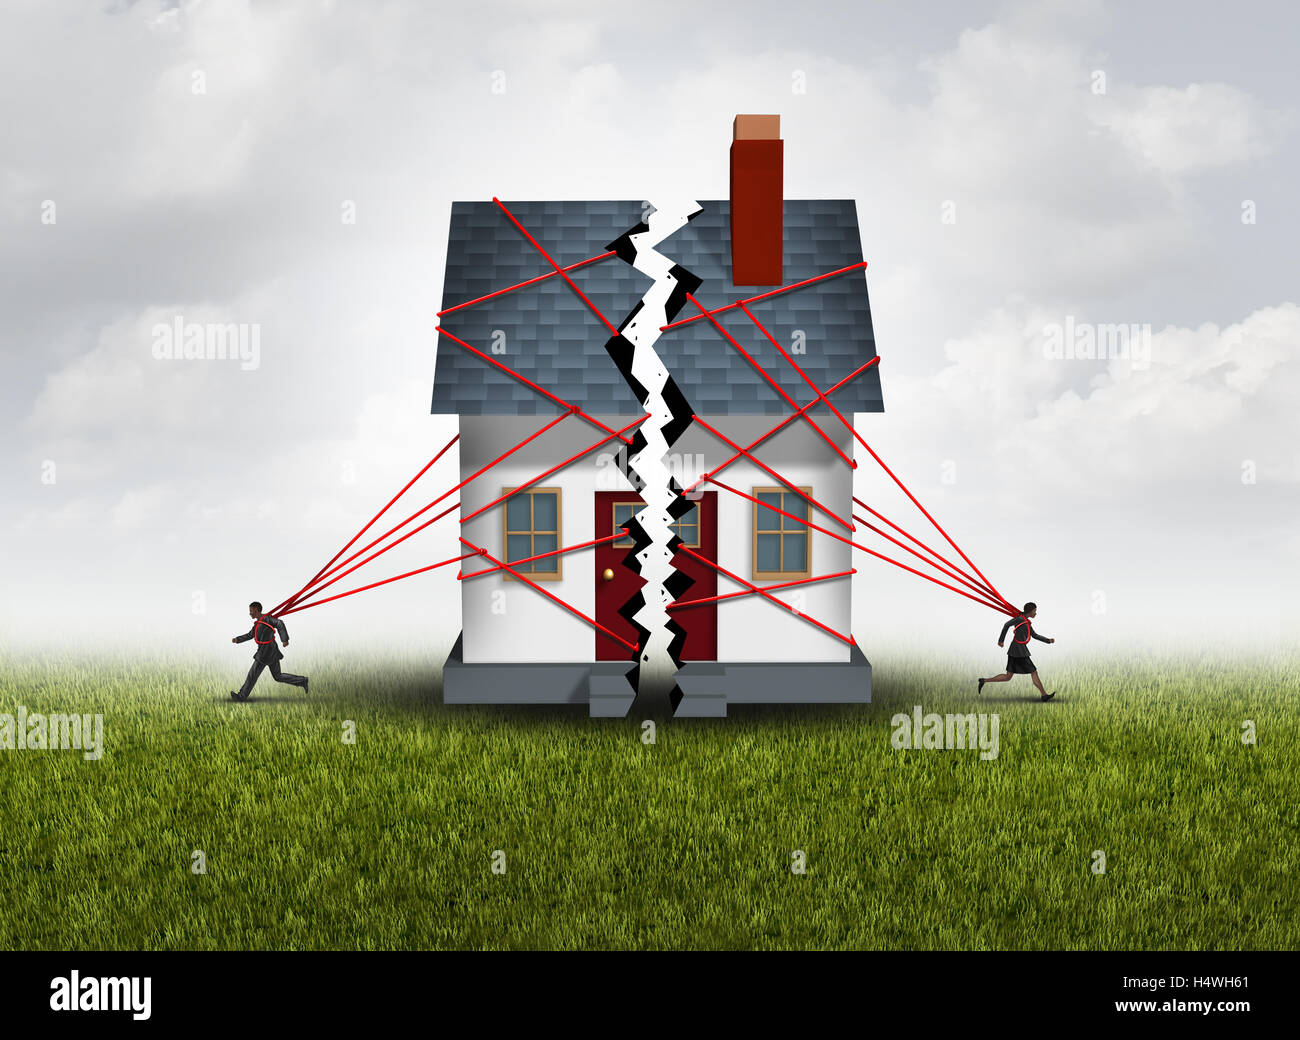 Broken family after a bitter divorce settlement and separation with a couple in a bad relationship breaking a house - Stock Image